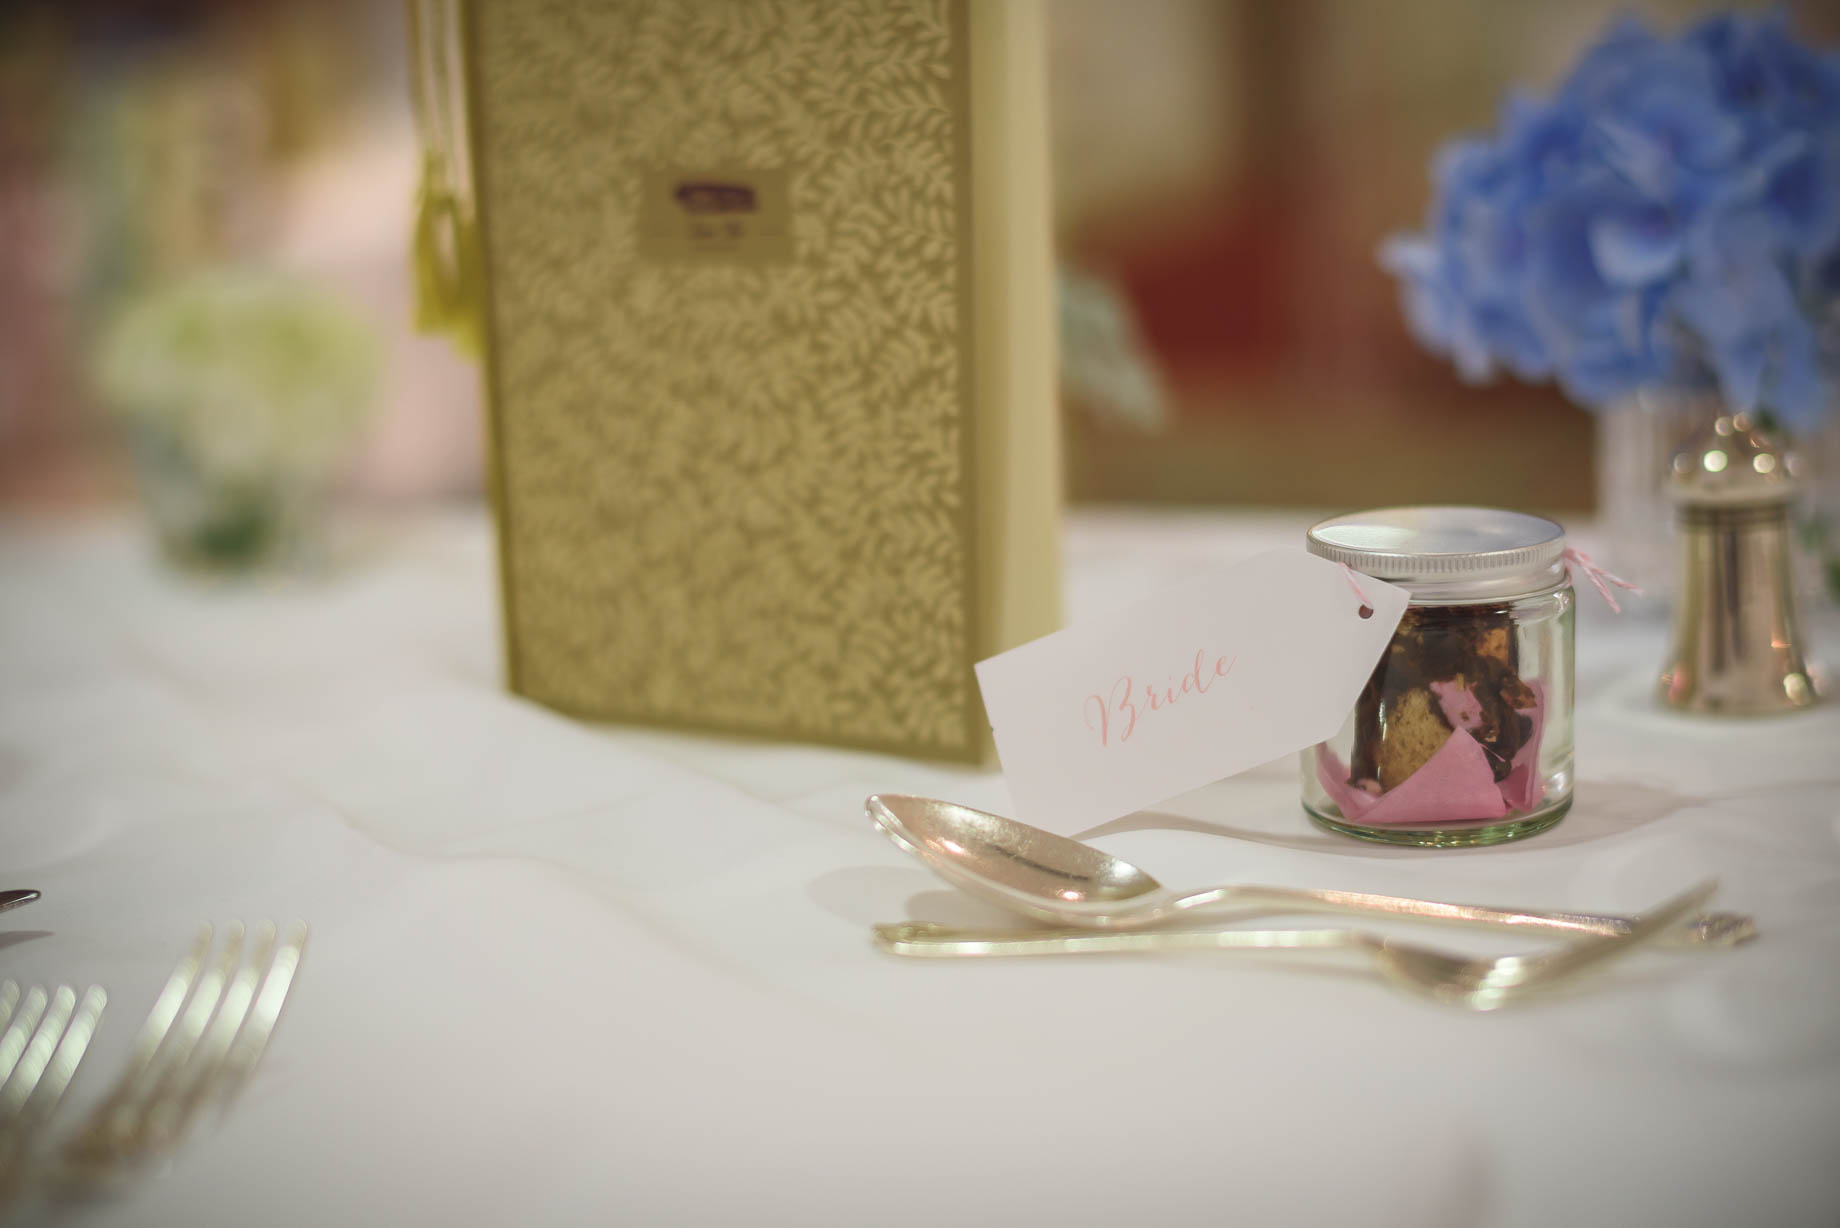 Luton Hoo wedding photography by Guy Collier Photography - Lauren and Gem (118 of 178)